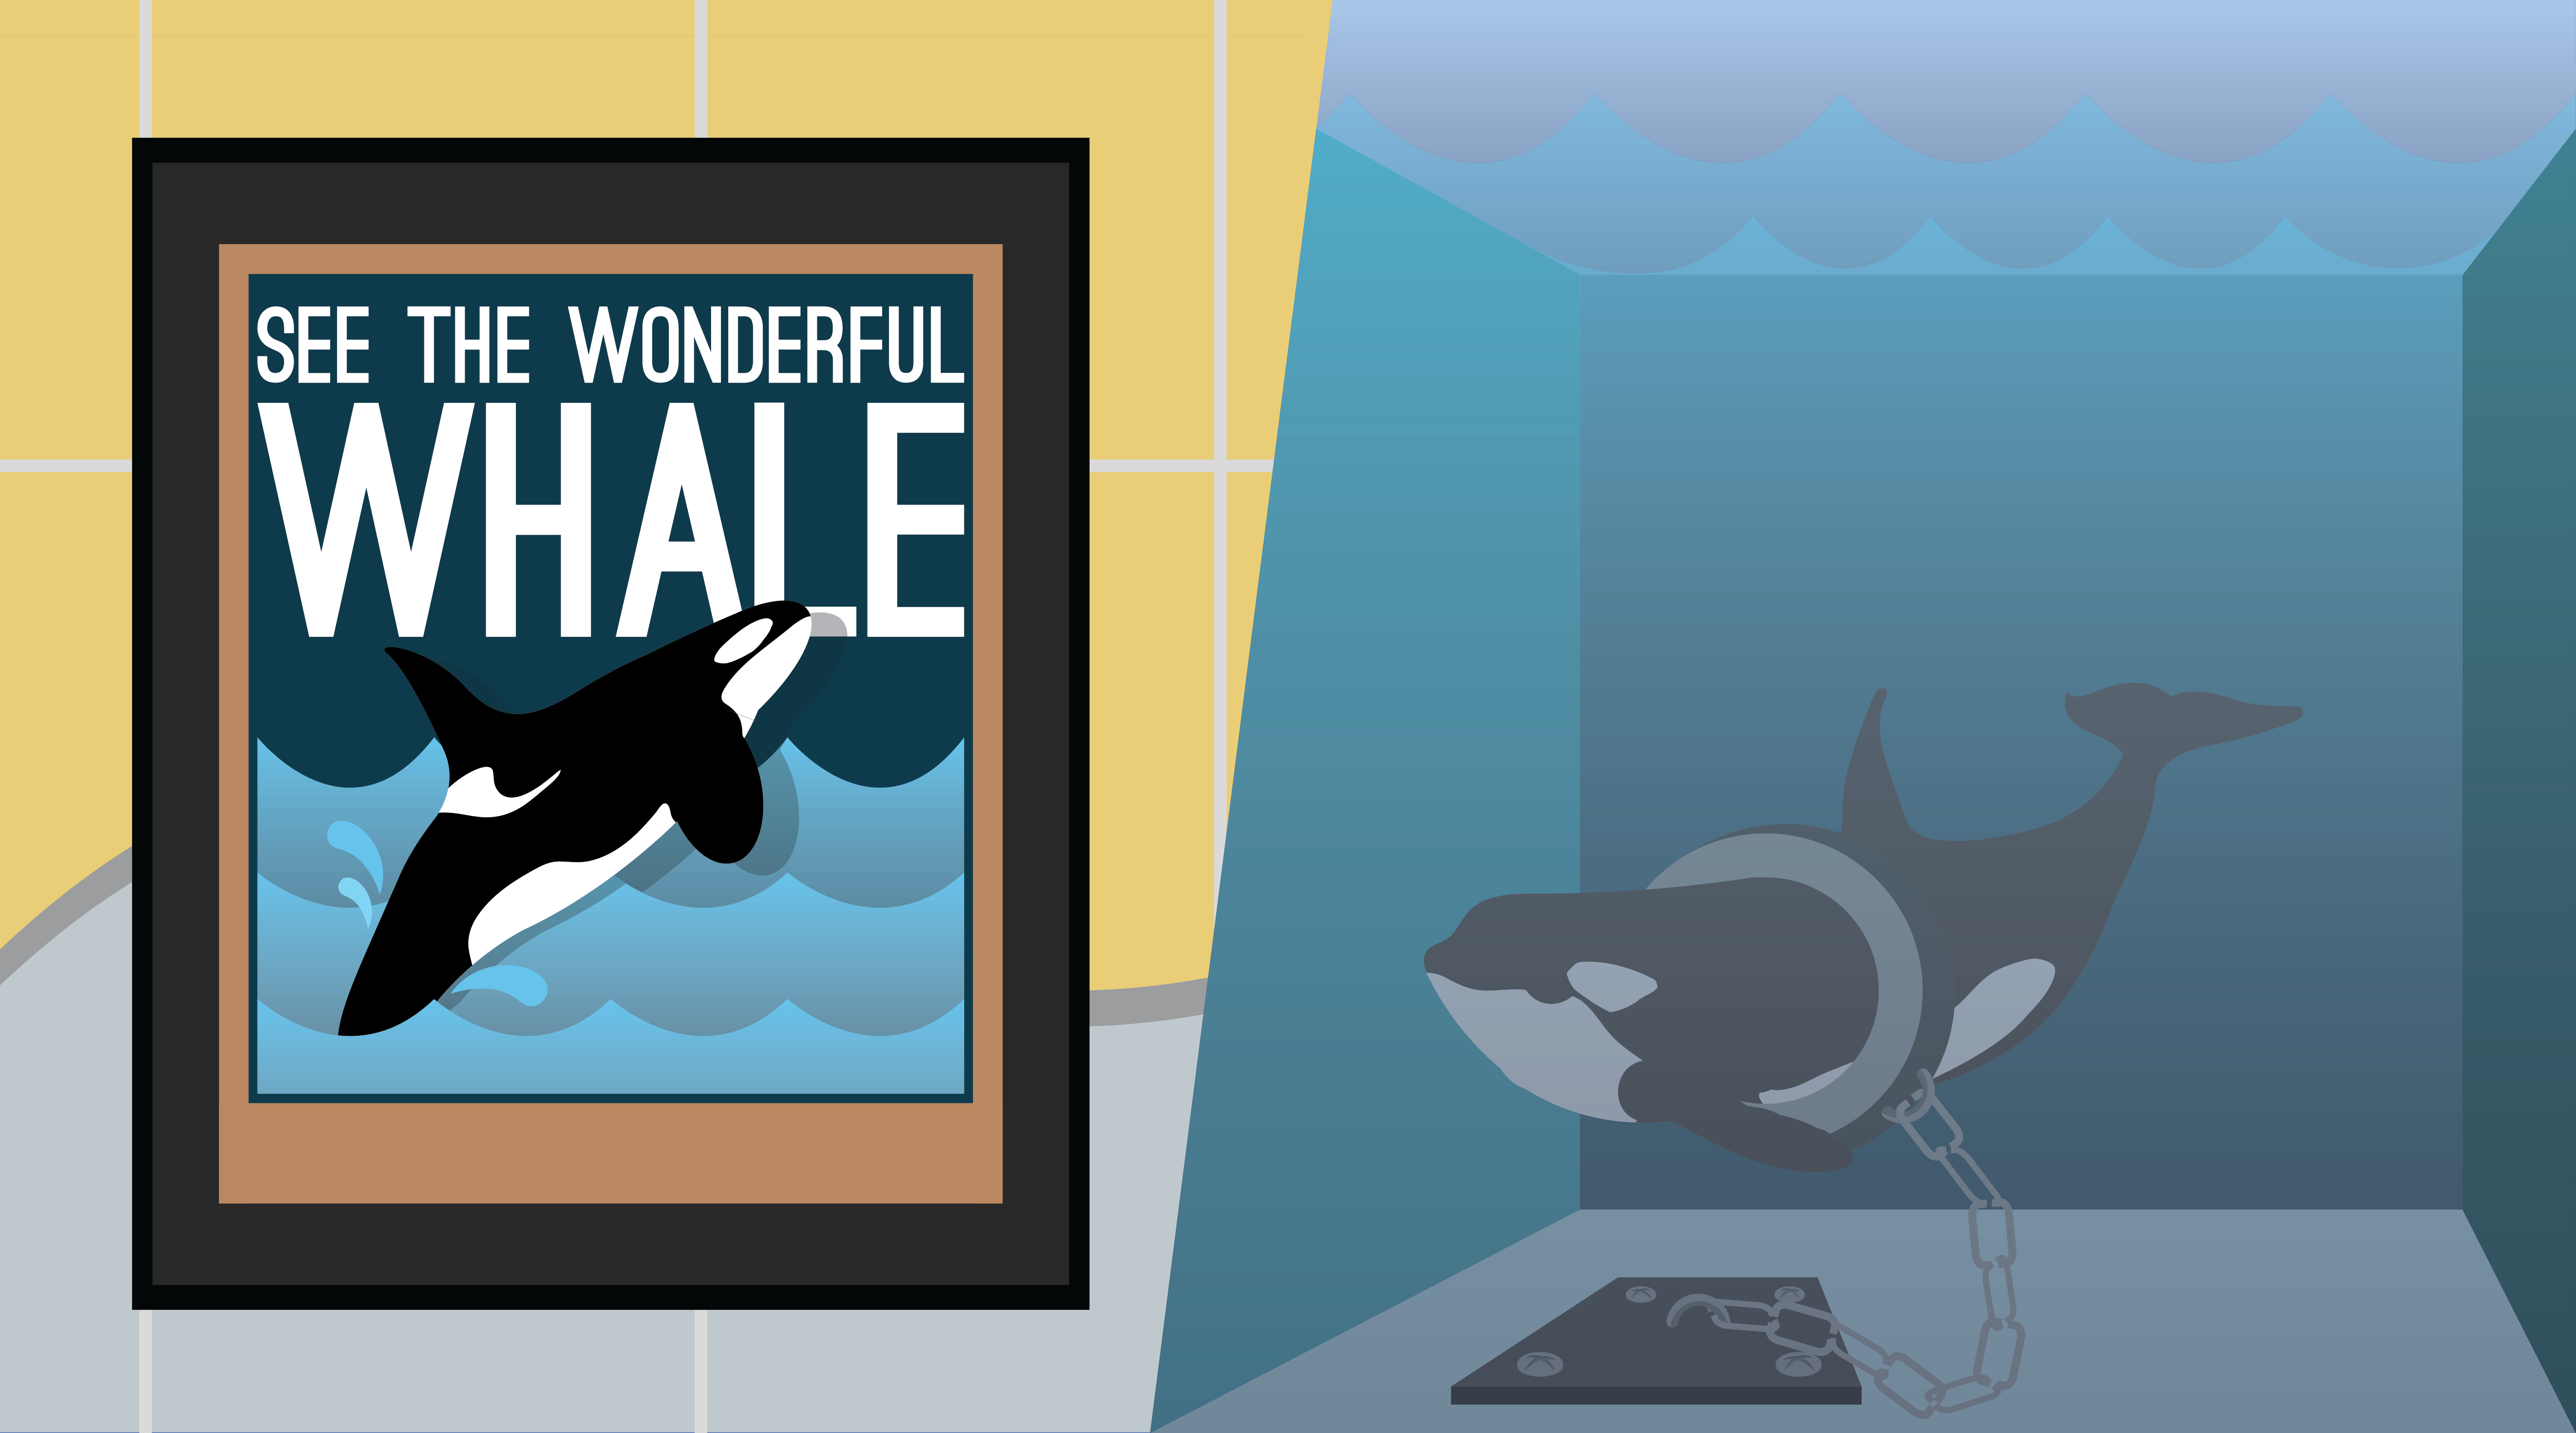 whales in captivity essay Blackfish - orcas in captivity the documentary blackfish, directed by gabriela cowperthwaite brings to light the many issues that involve orcas being held in captivity at certain aquatic parks such as seaworld as well as others.